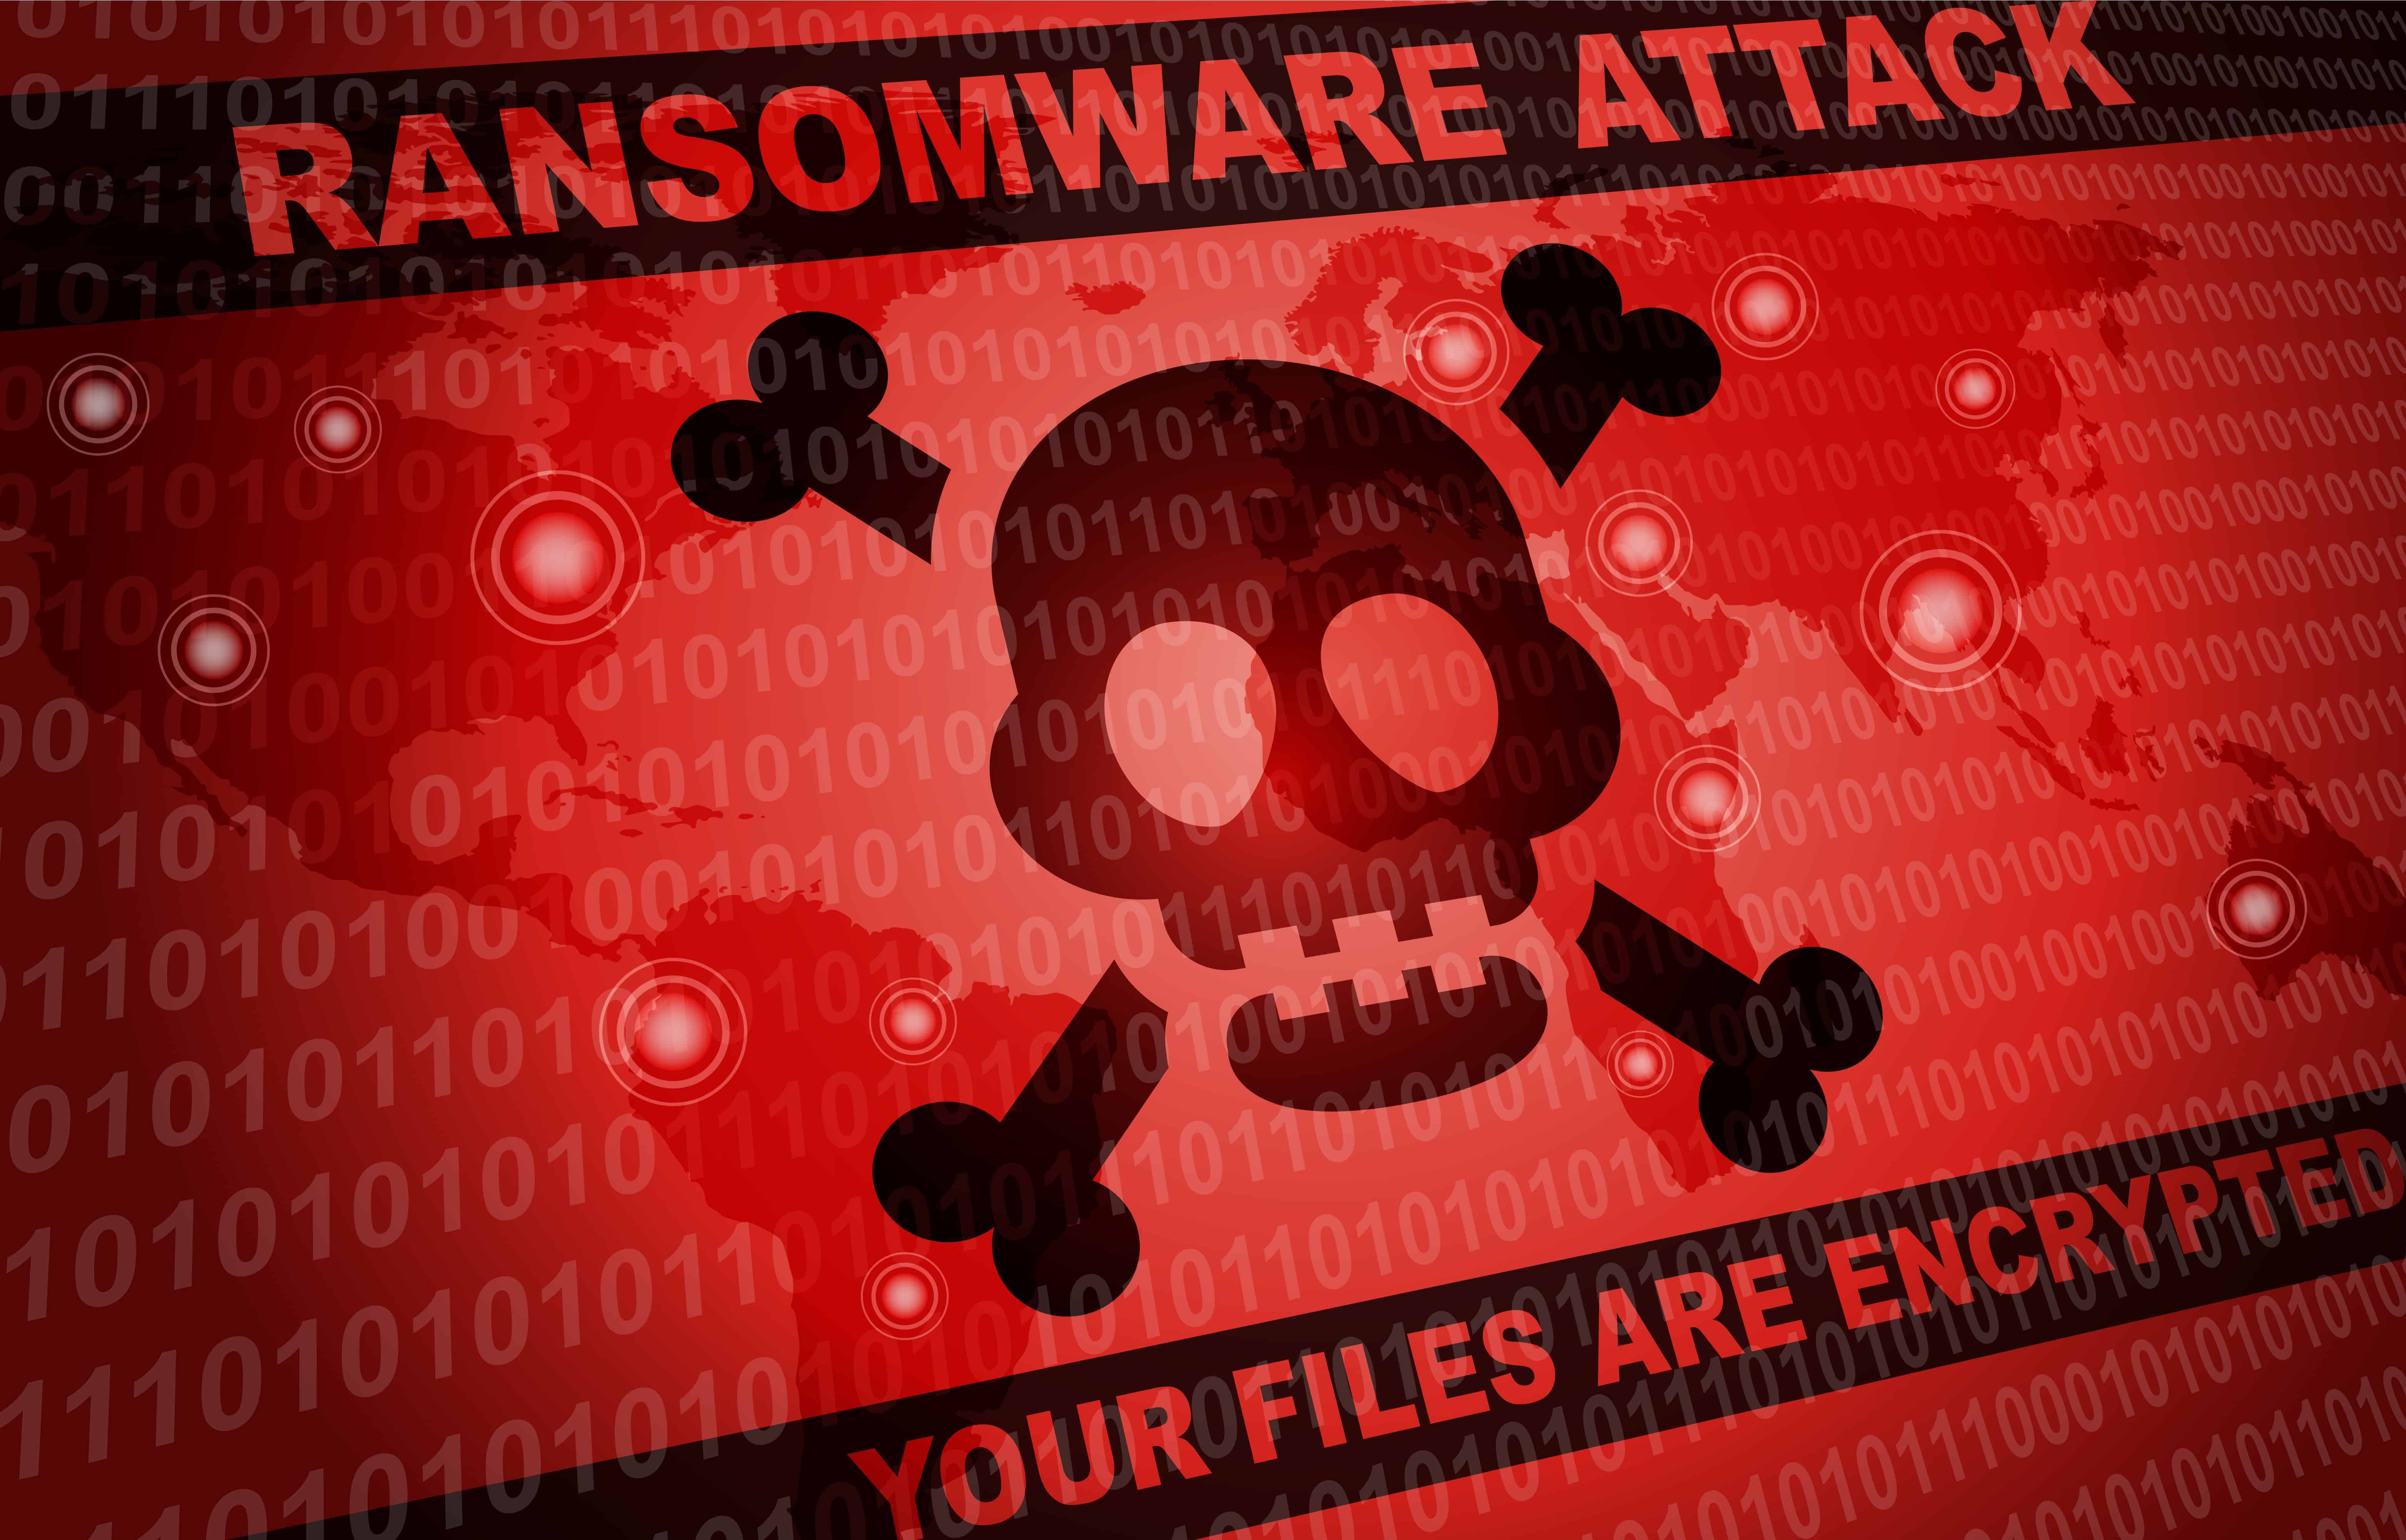 2018 Verizon Data Breach Report Finds That Ransomware Attacks Doubled Last Year